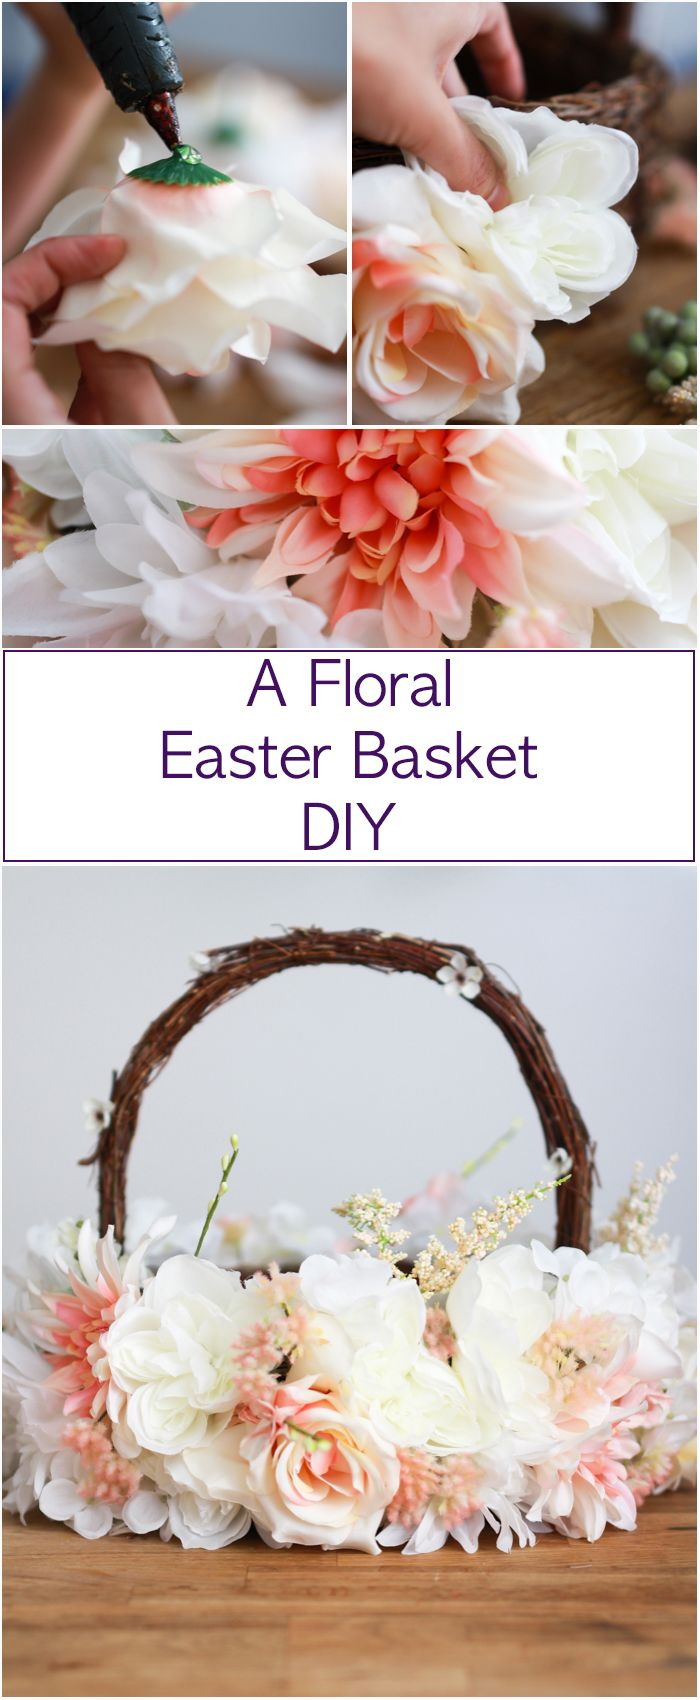 A floral Easter Basket DIY A beautiful